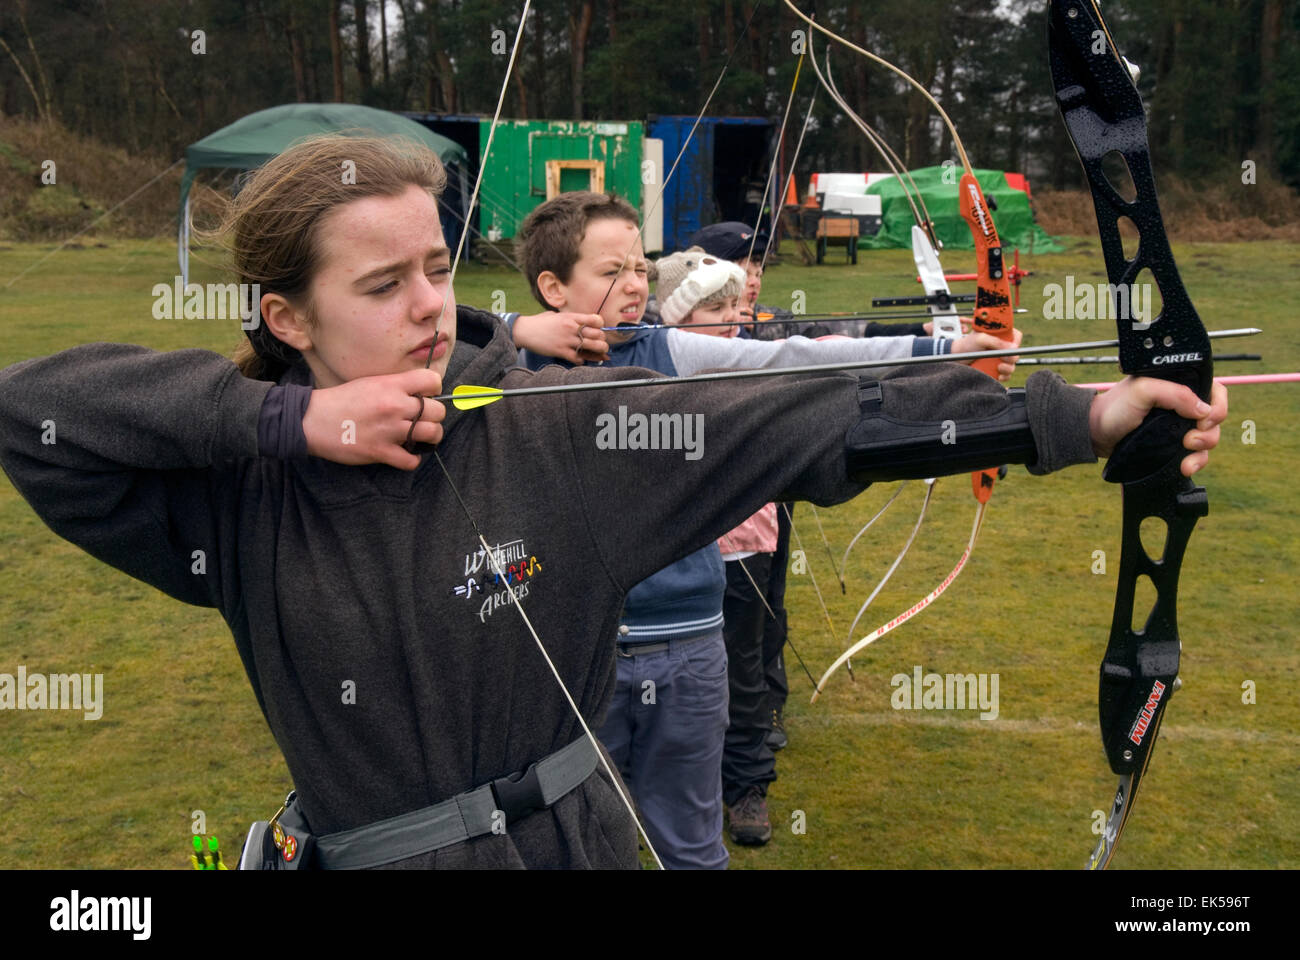 Children in the Under 14 age category take aim in an annual summer archery shoot, Whitehill, Bordon, Hampshire, - Stock Image